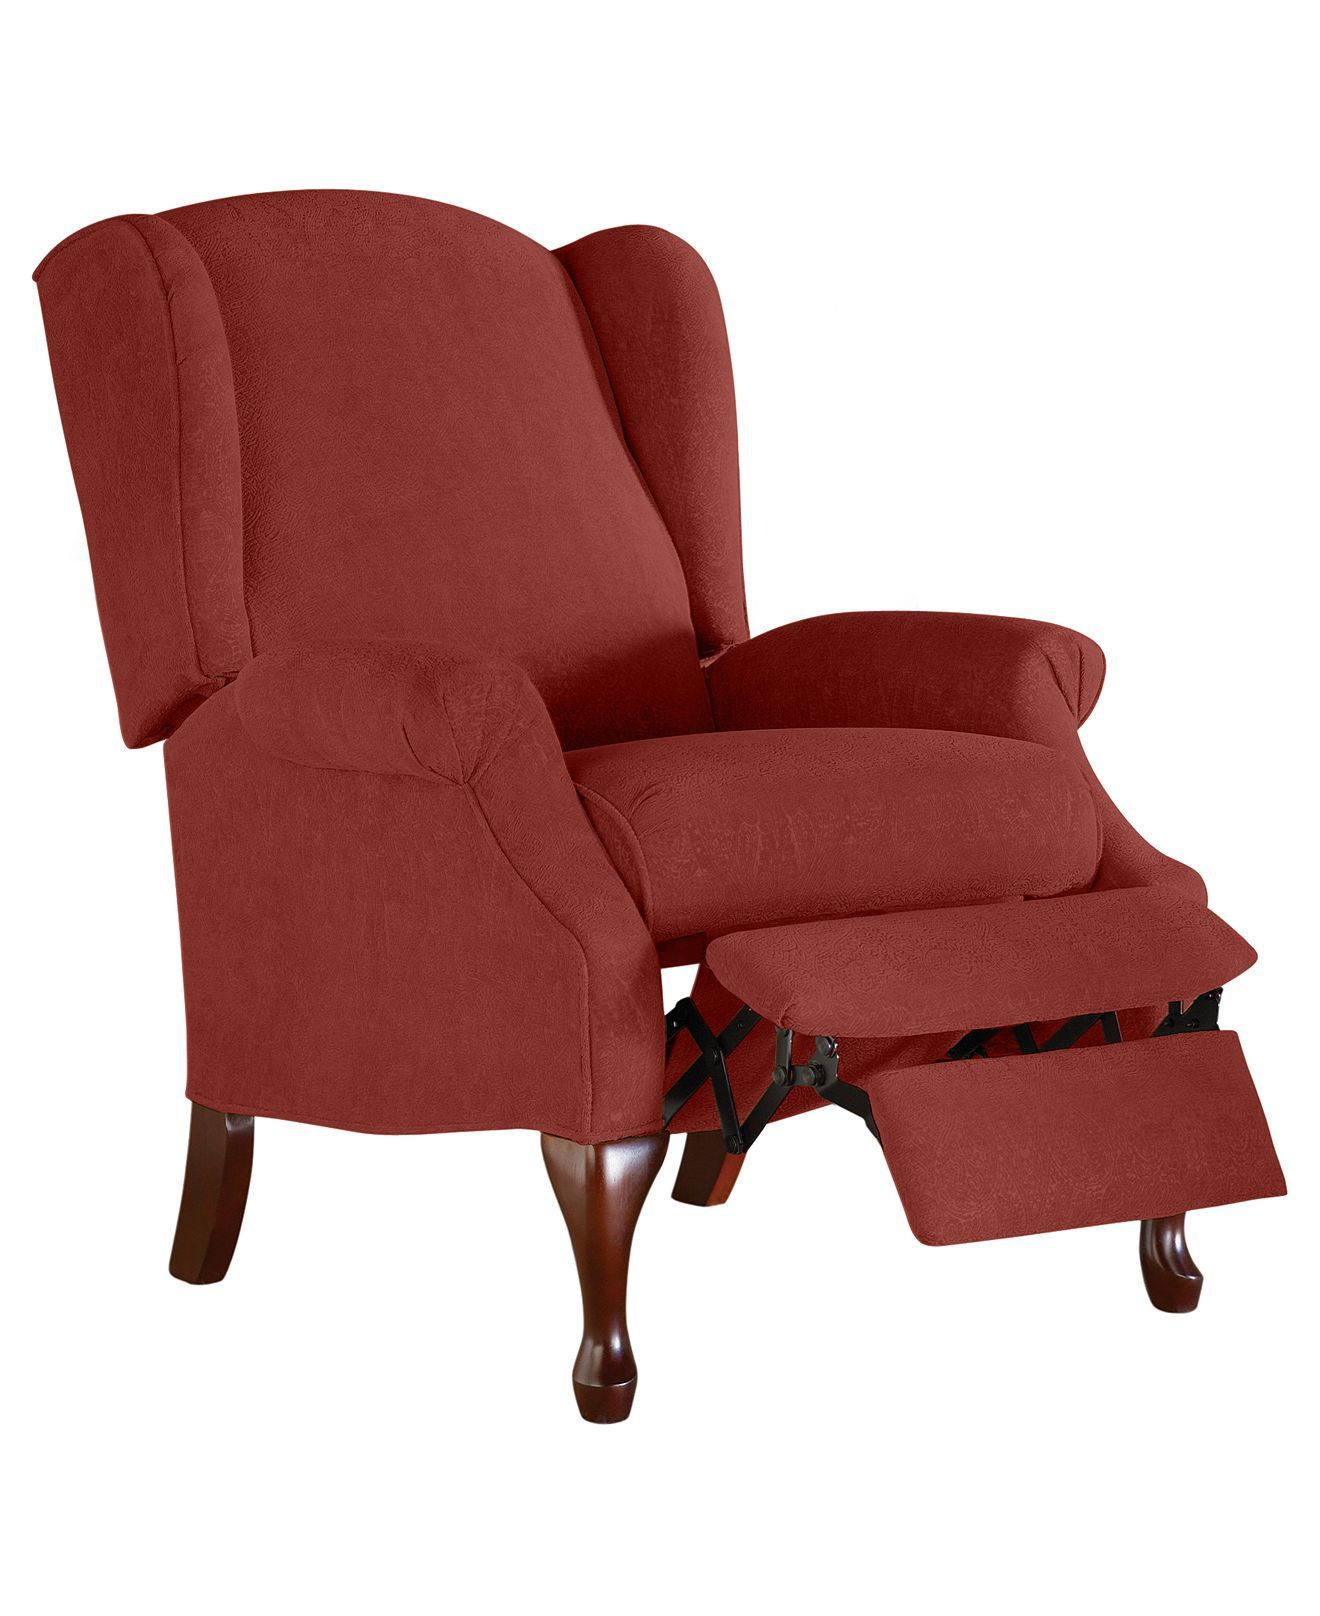 Perfect Andy Recliner Chair, Queen Anne Style   Furniture   Macyu0027s (Color  Russet)